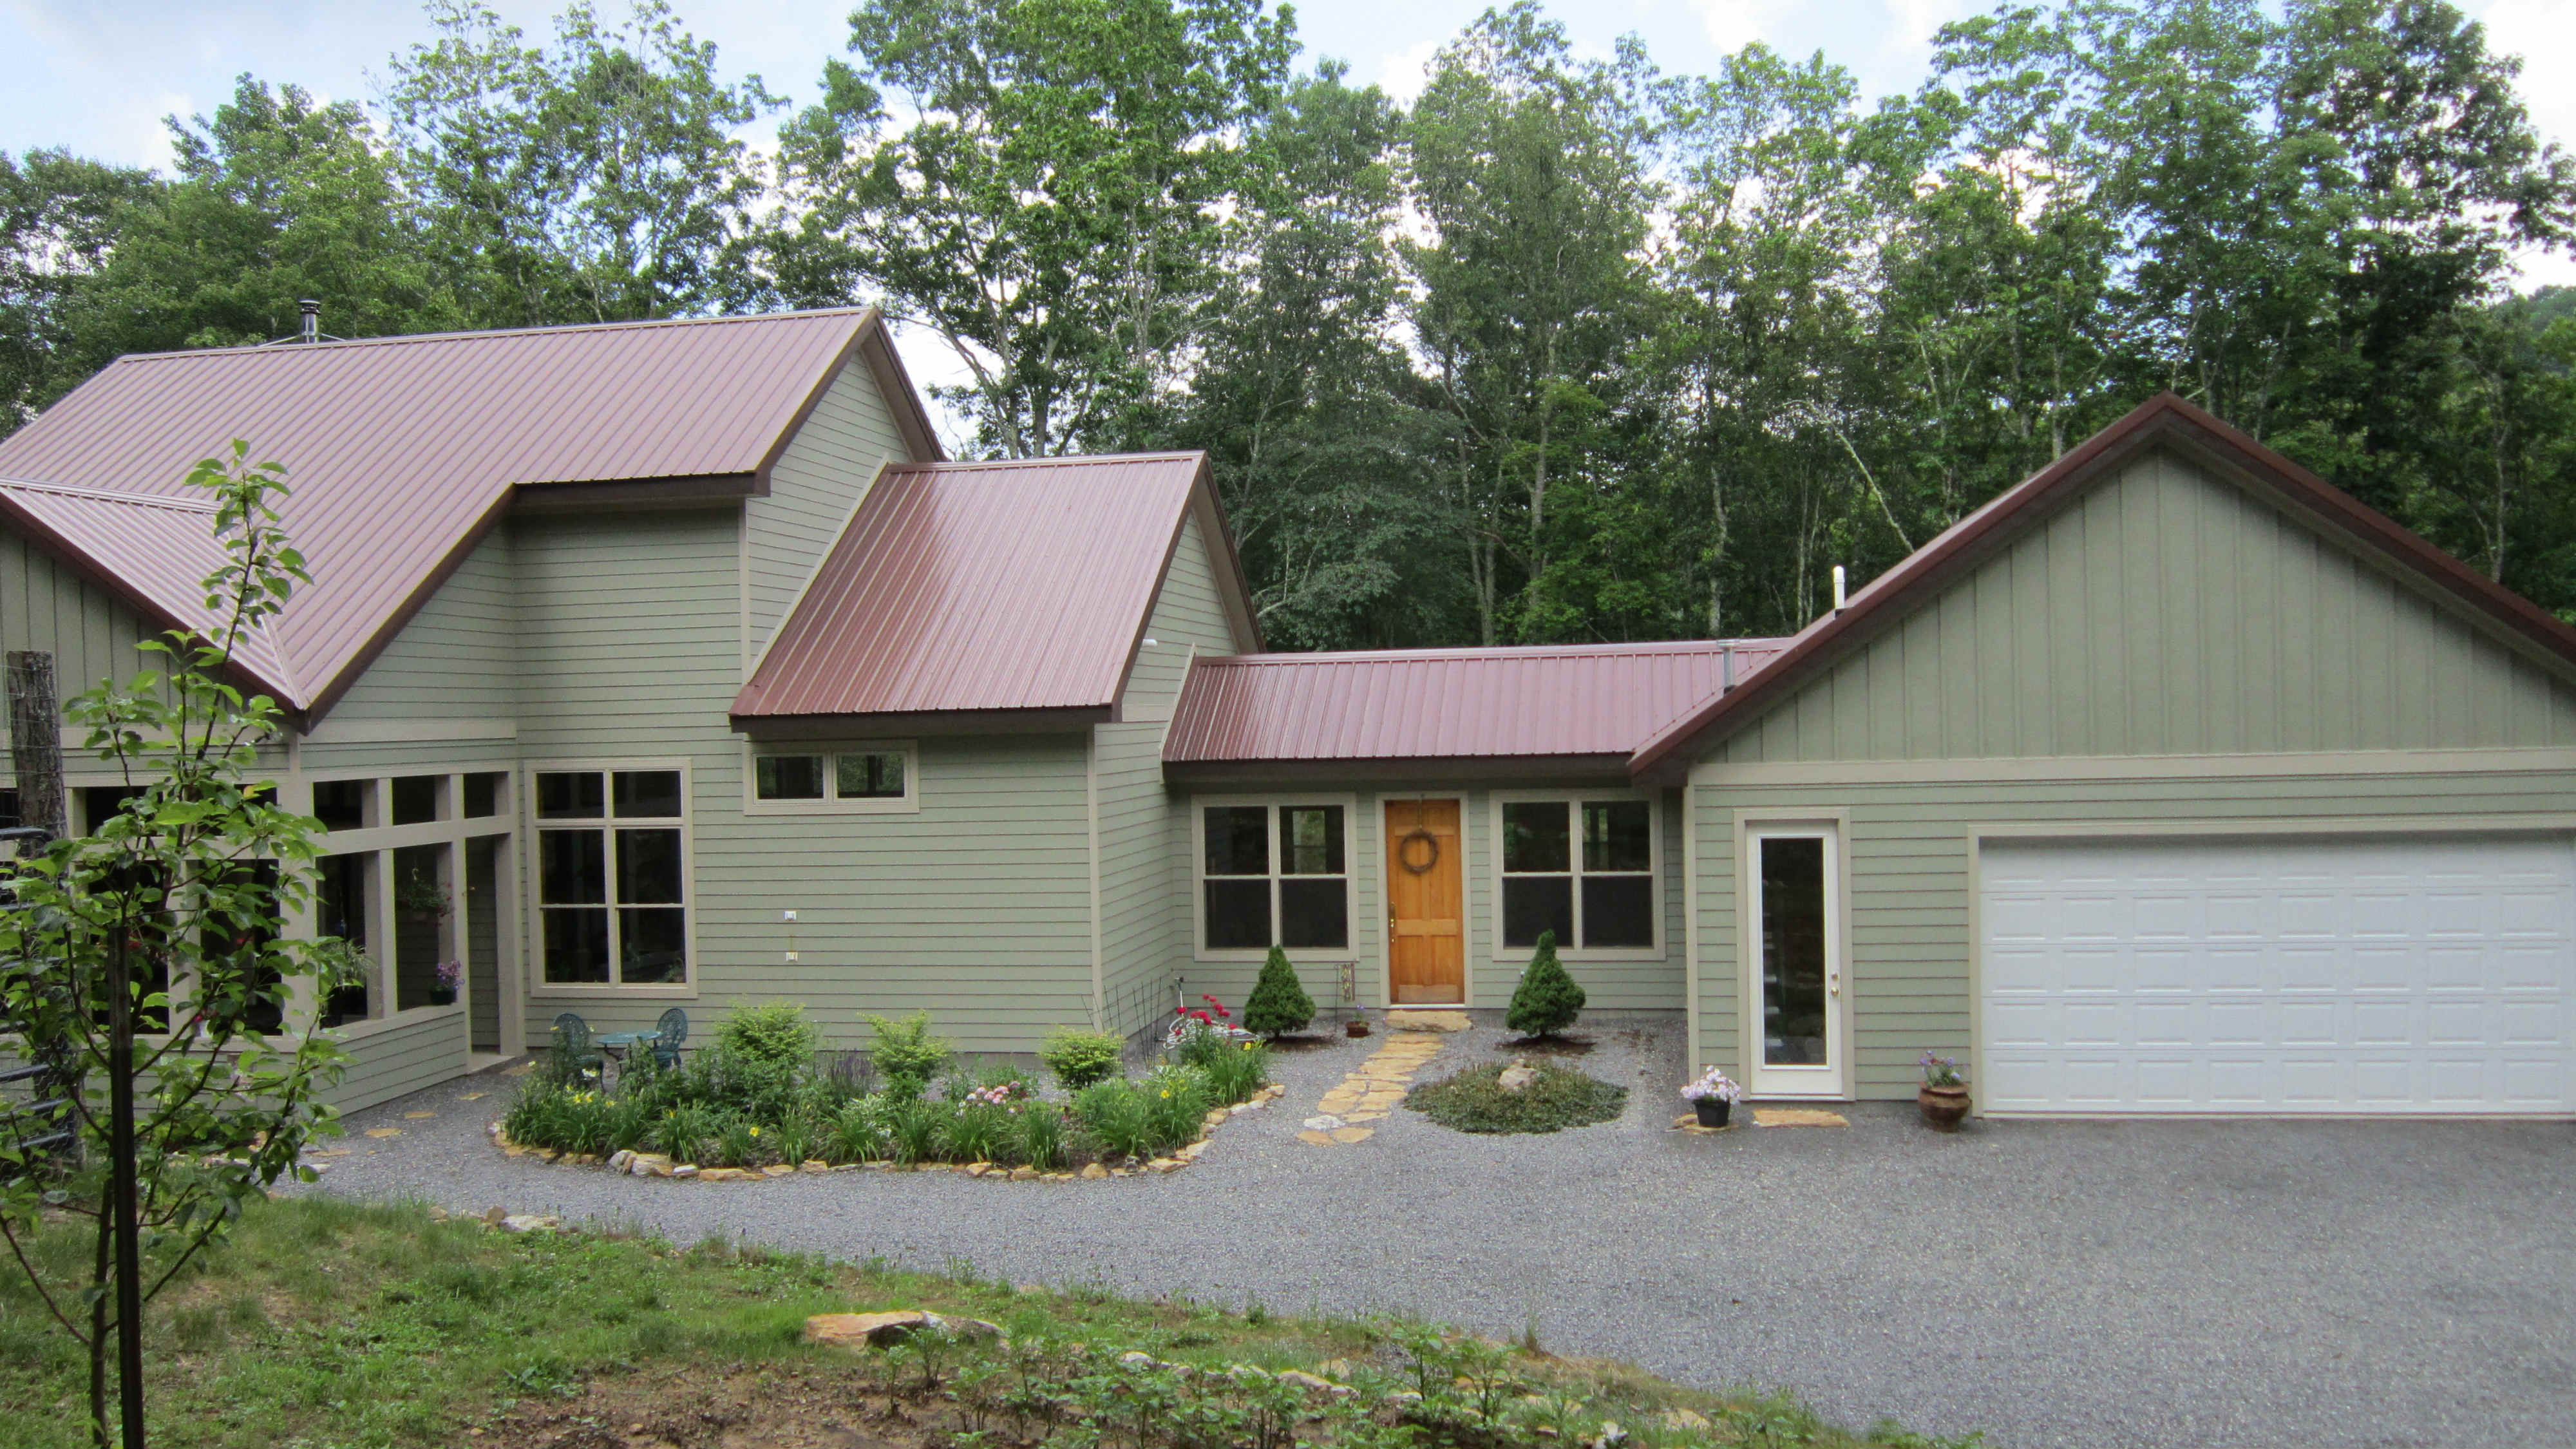 built-a-healthy-home-in-west-virginia-9-acres-in-radio-free-area_good